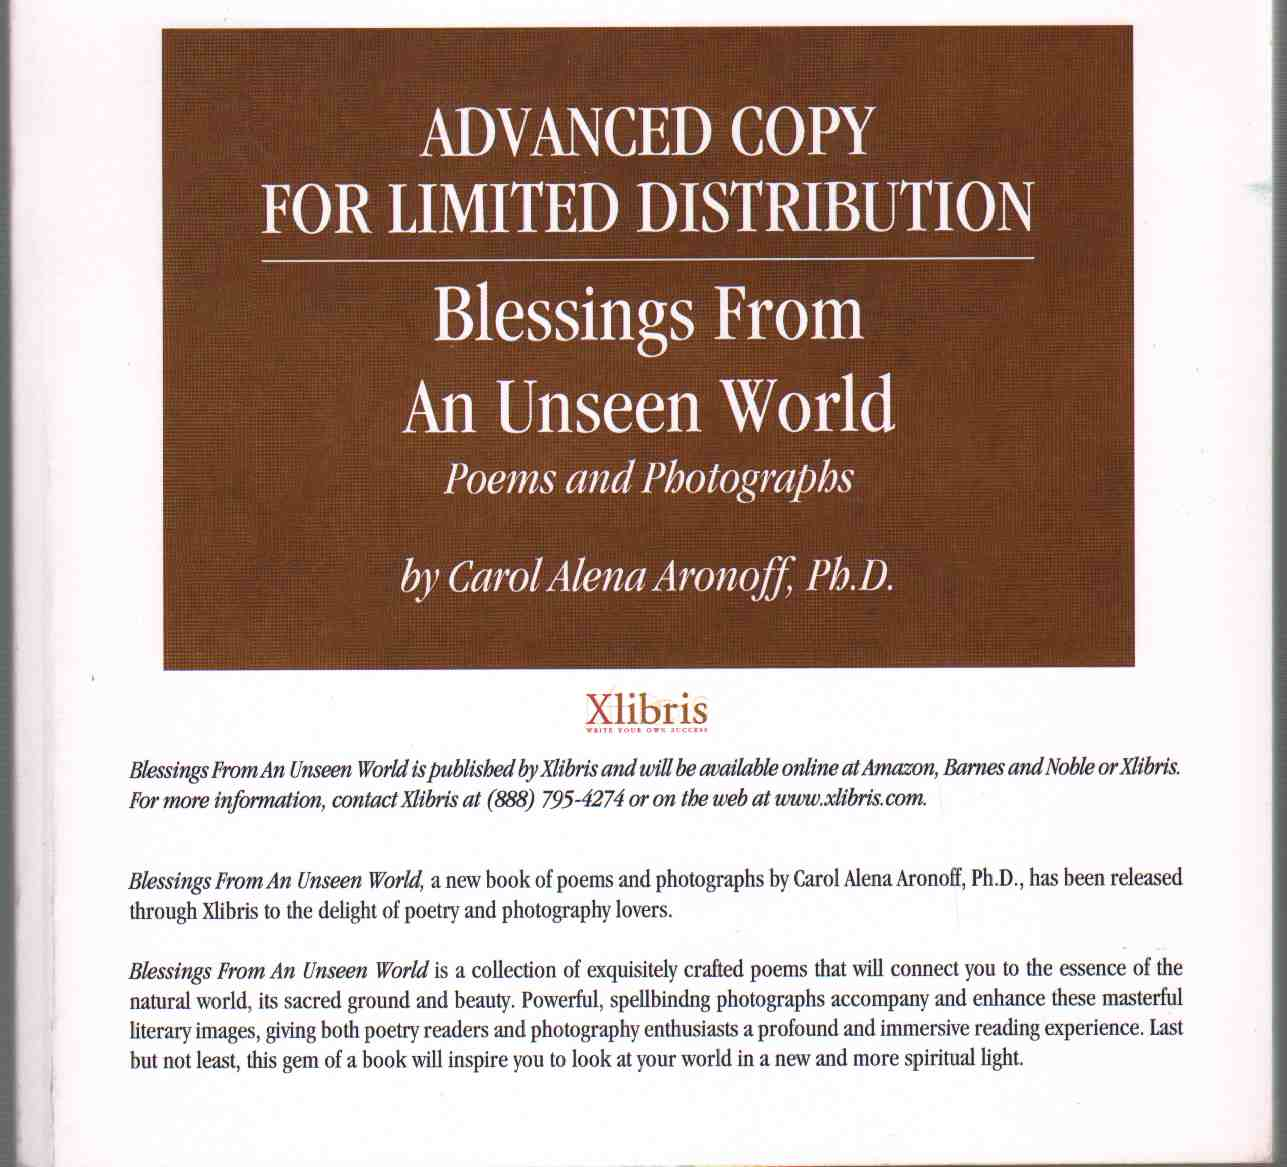 BLESSINGS FROM AN UNSEEN WORLD Poems and Photographa. Advanced Copy for Limited Distribution, Aronoff, Carol Alena